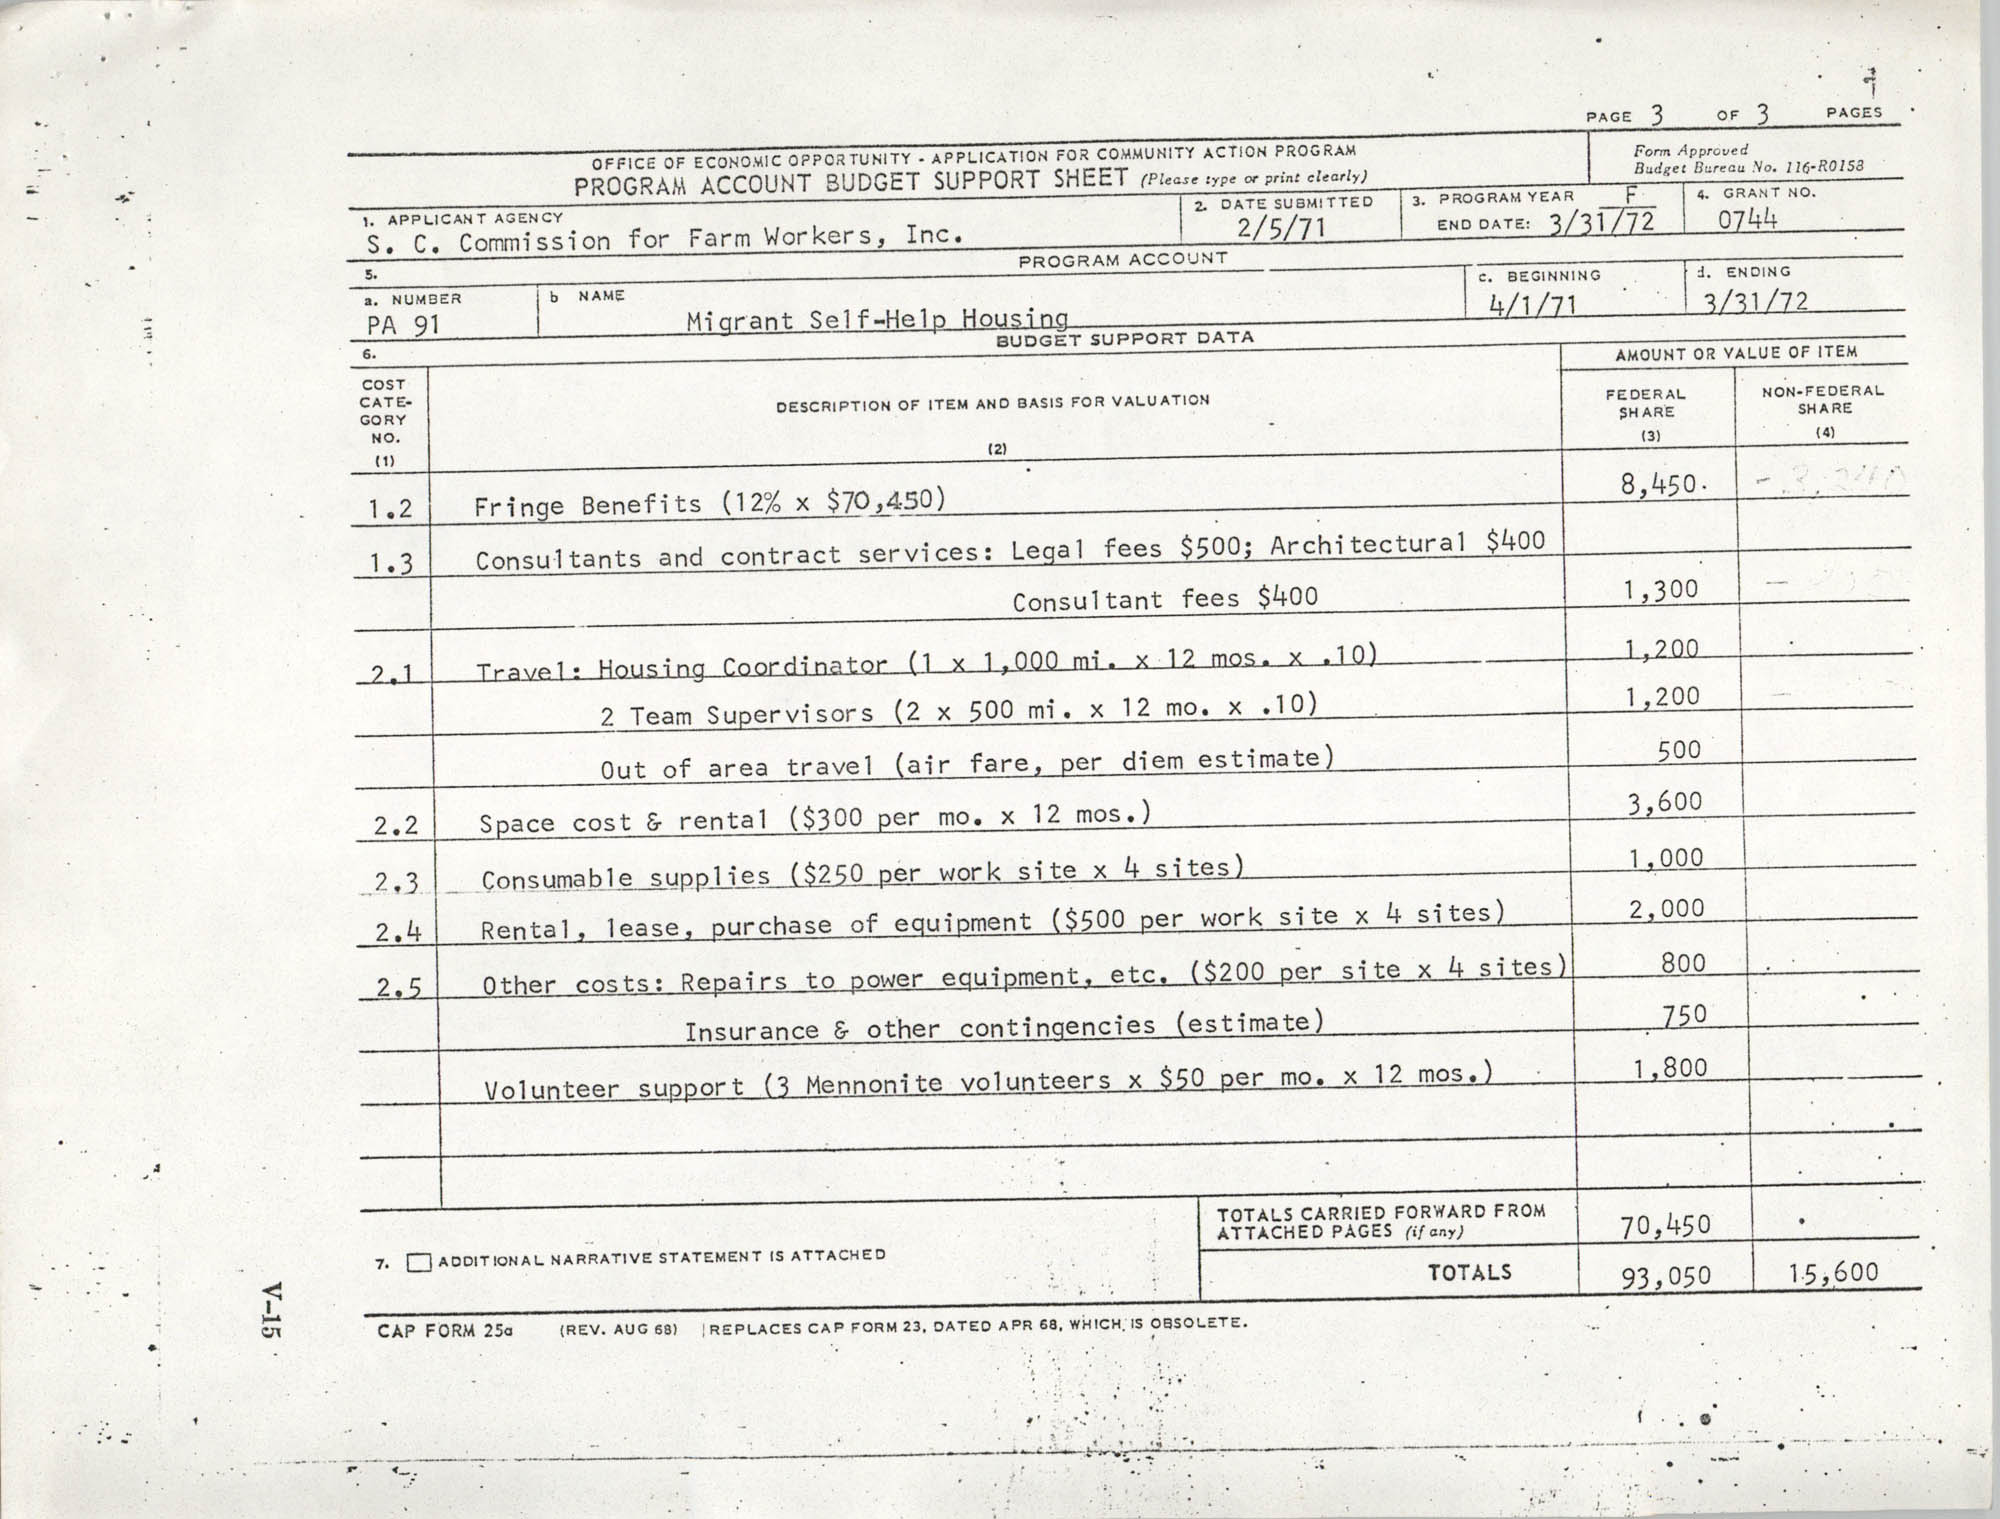 Migrant Self-Help Housing, Program Account Budget Forms, Page 3